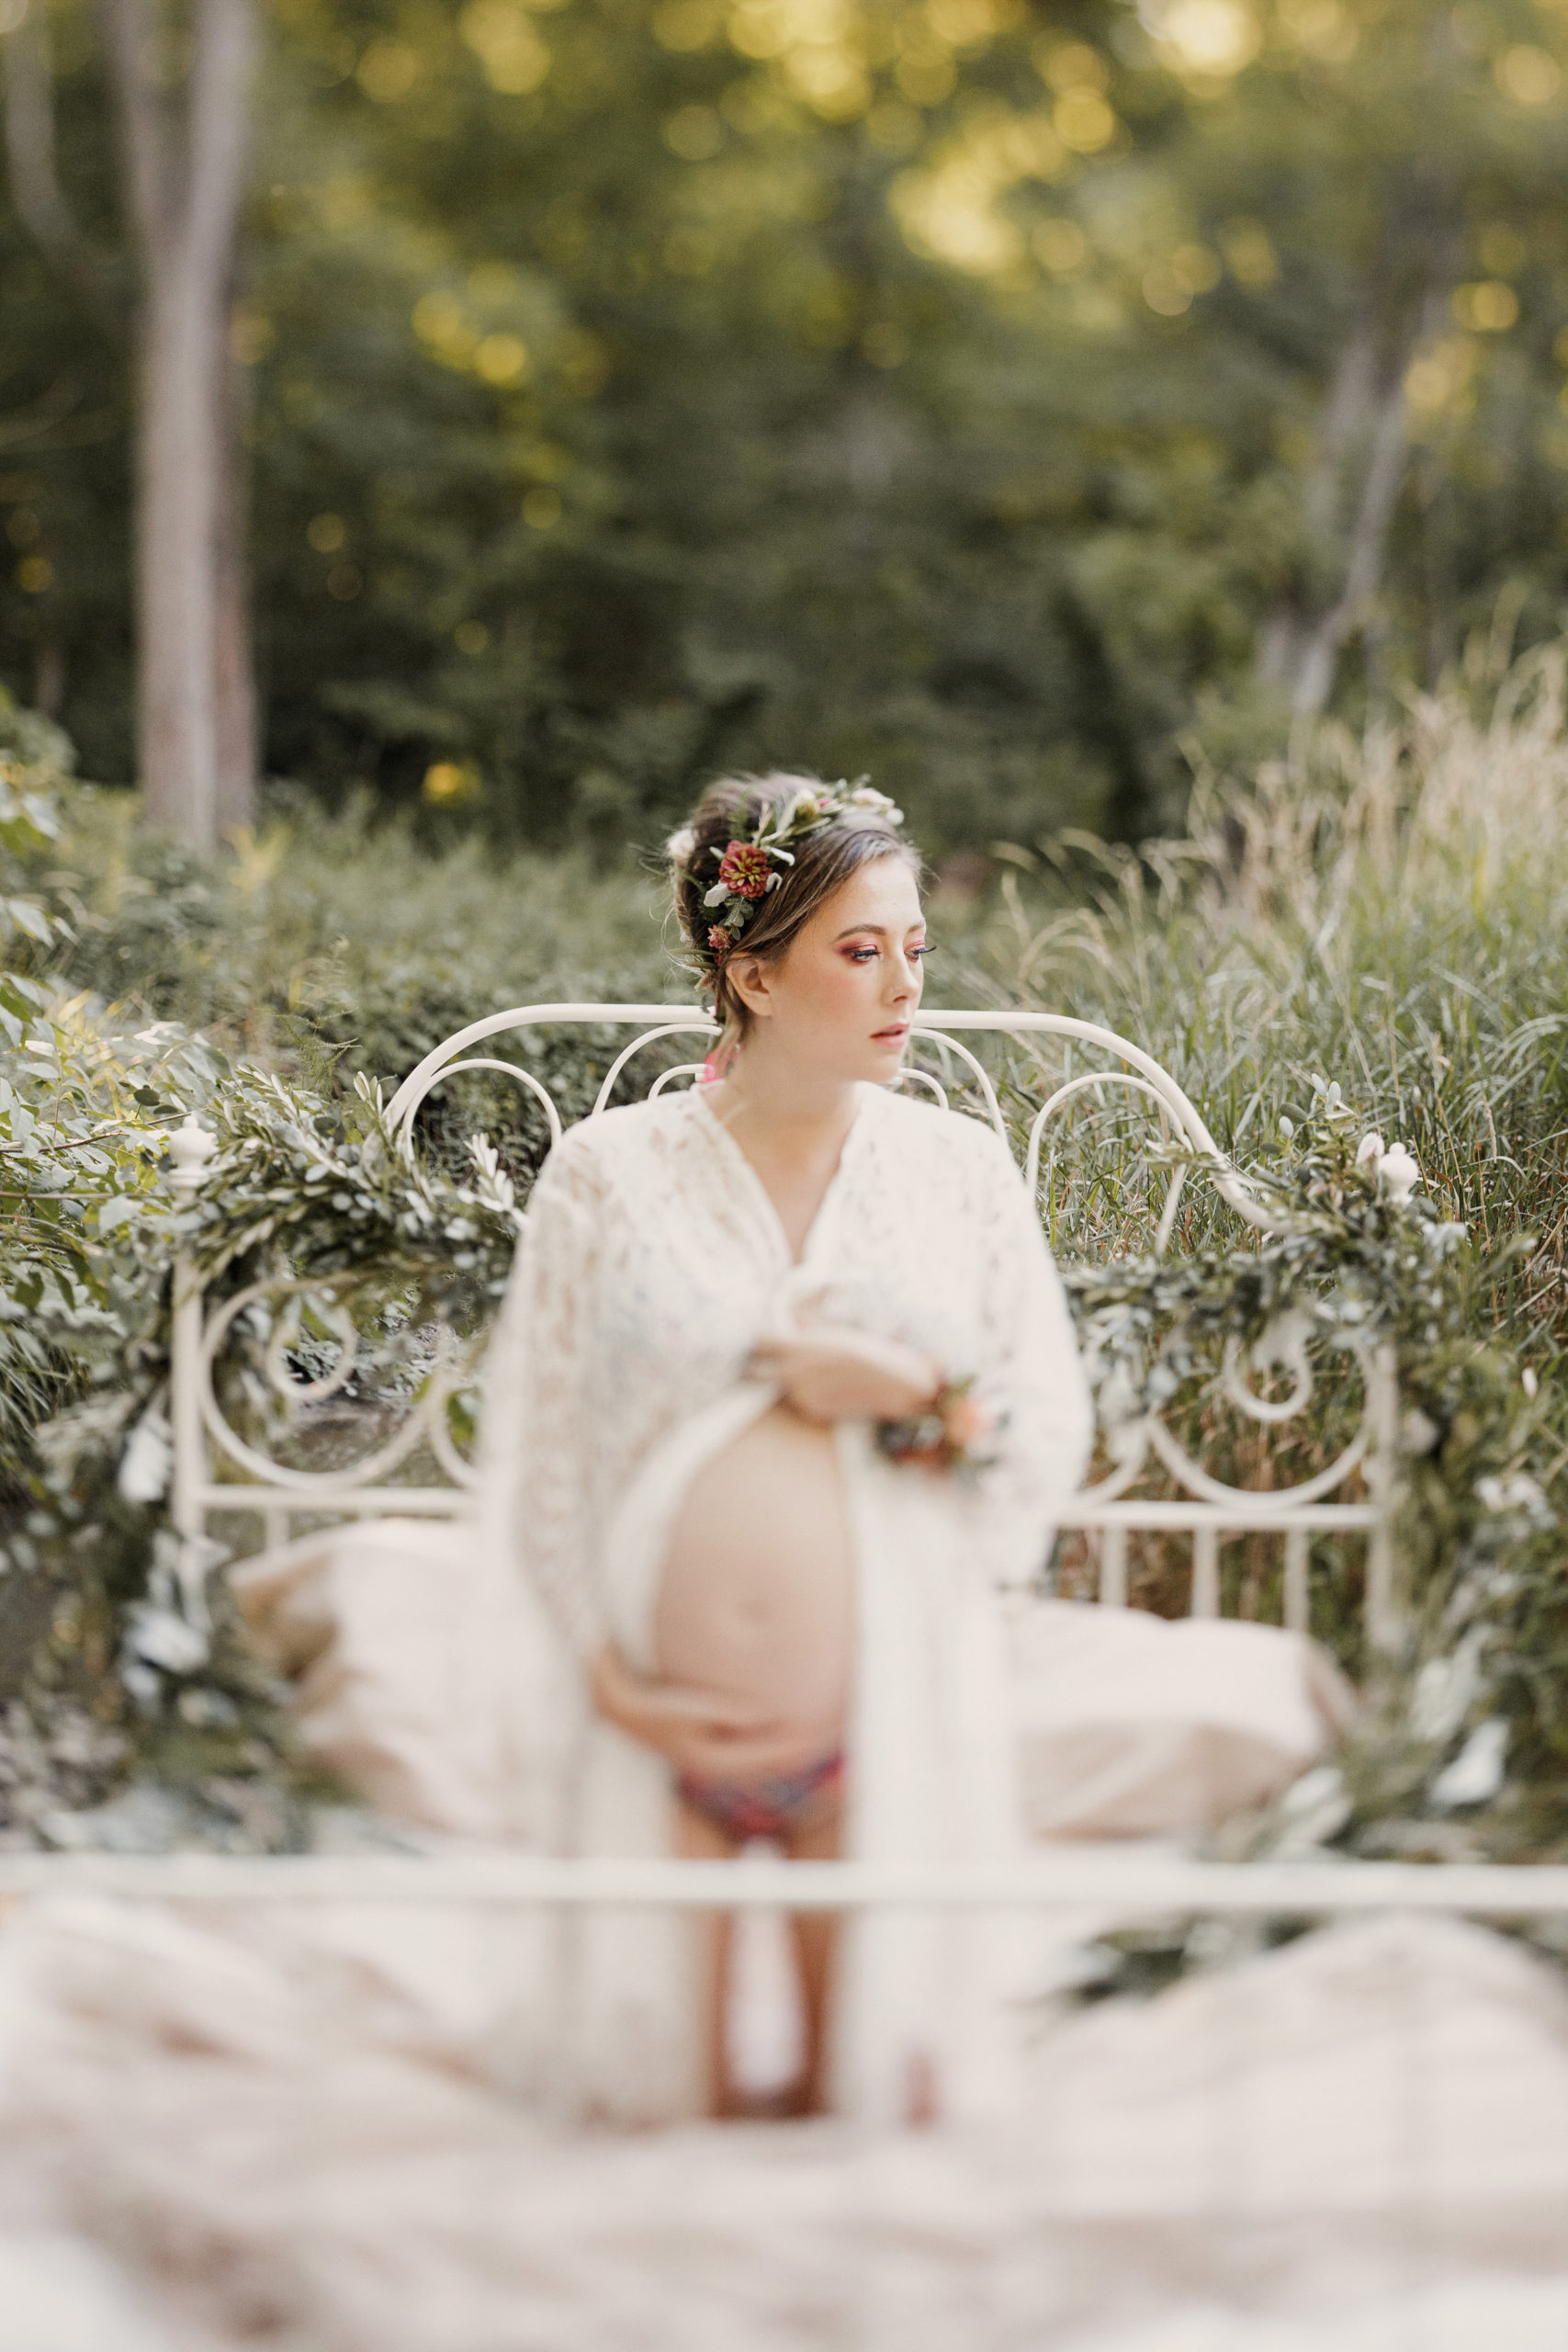 niagara pregnant boudoir maternity photographer afterglow feeder farm southcoast beauty